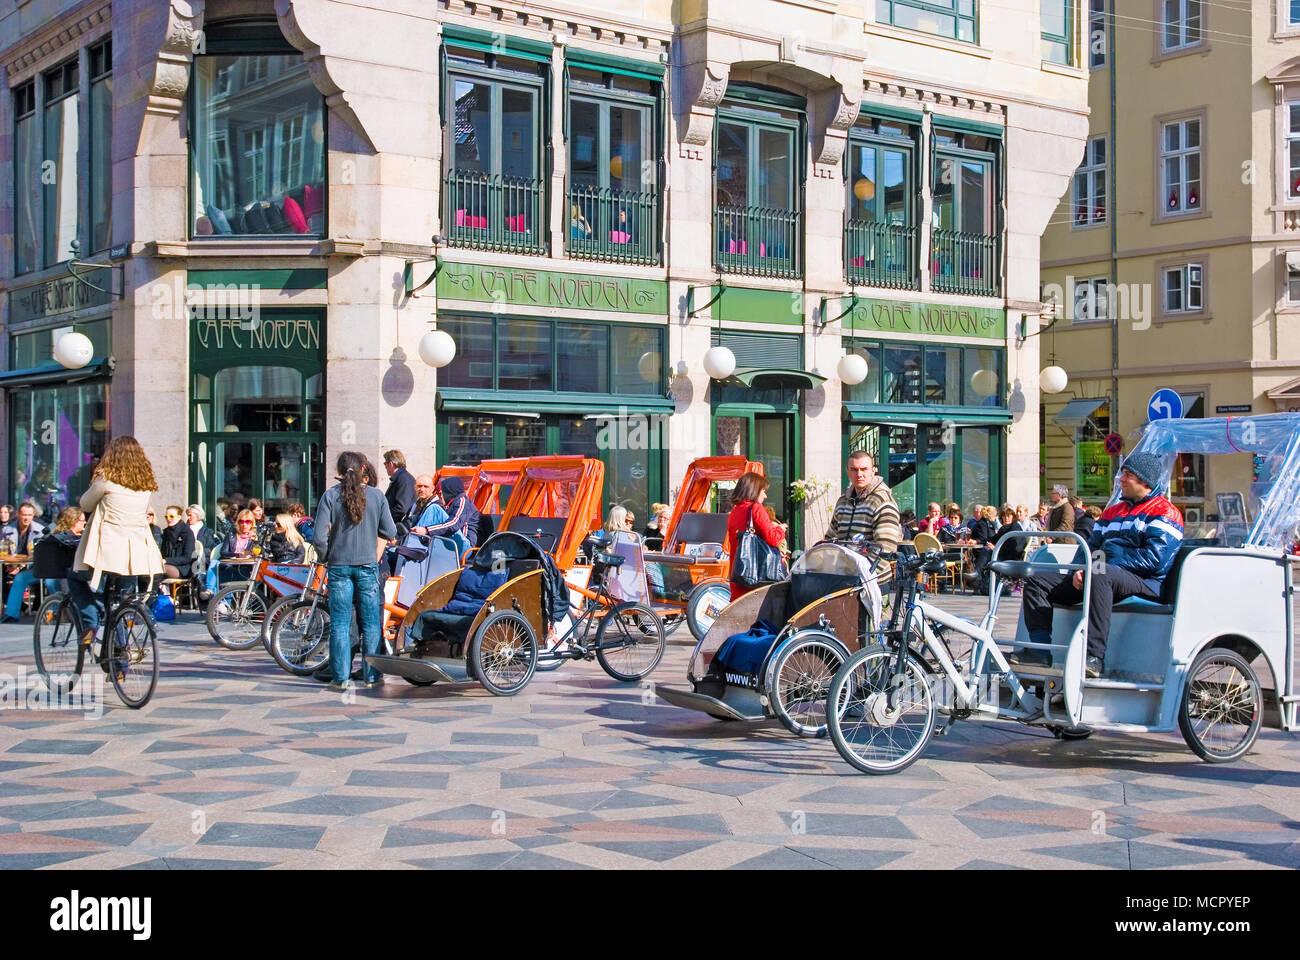 COPENHAGEN, DENMARK - APRIL 13, 2010: Pedicabs on car free zone Stroget. Located near Amagertorv and Fountain Stork - Stock Image